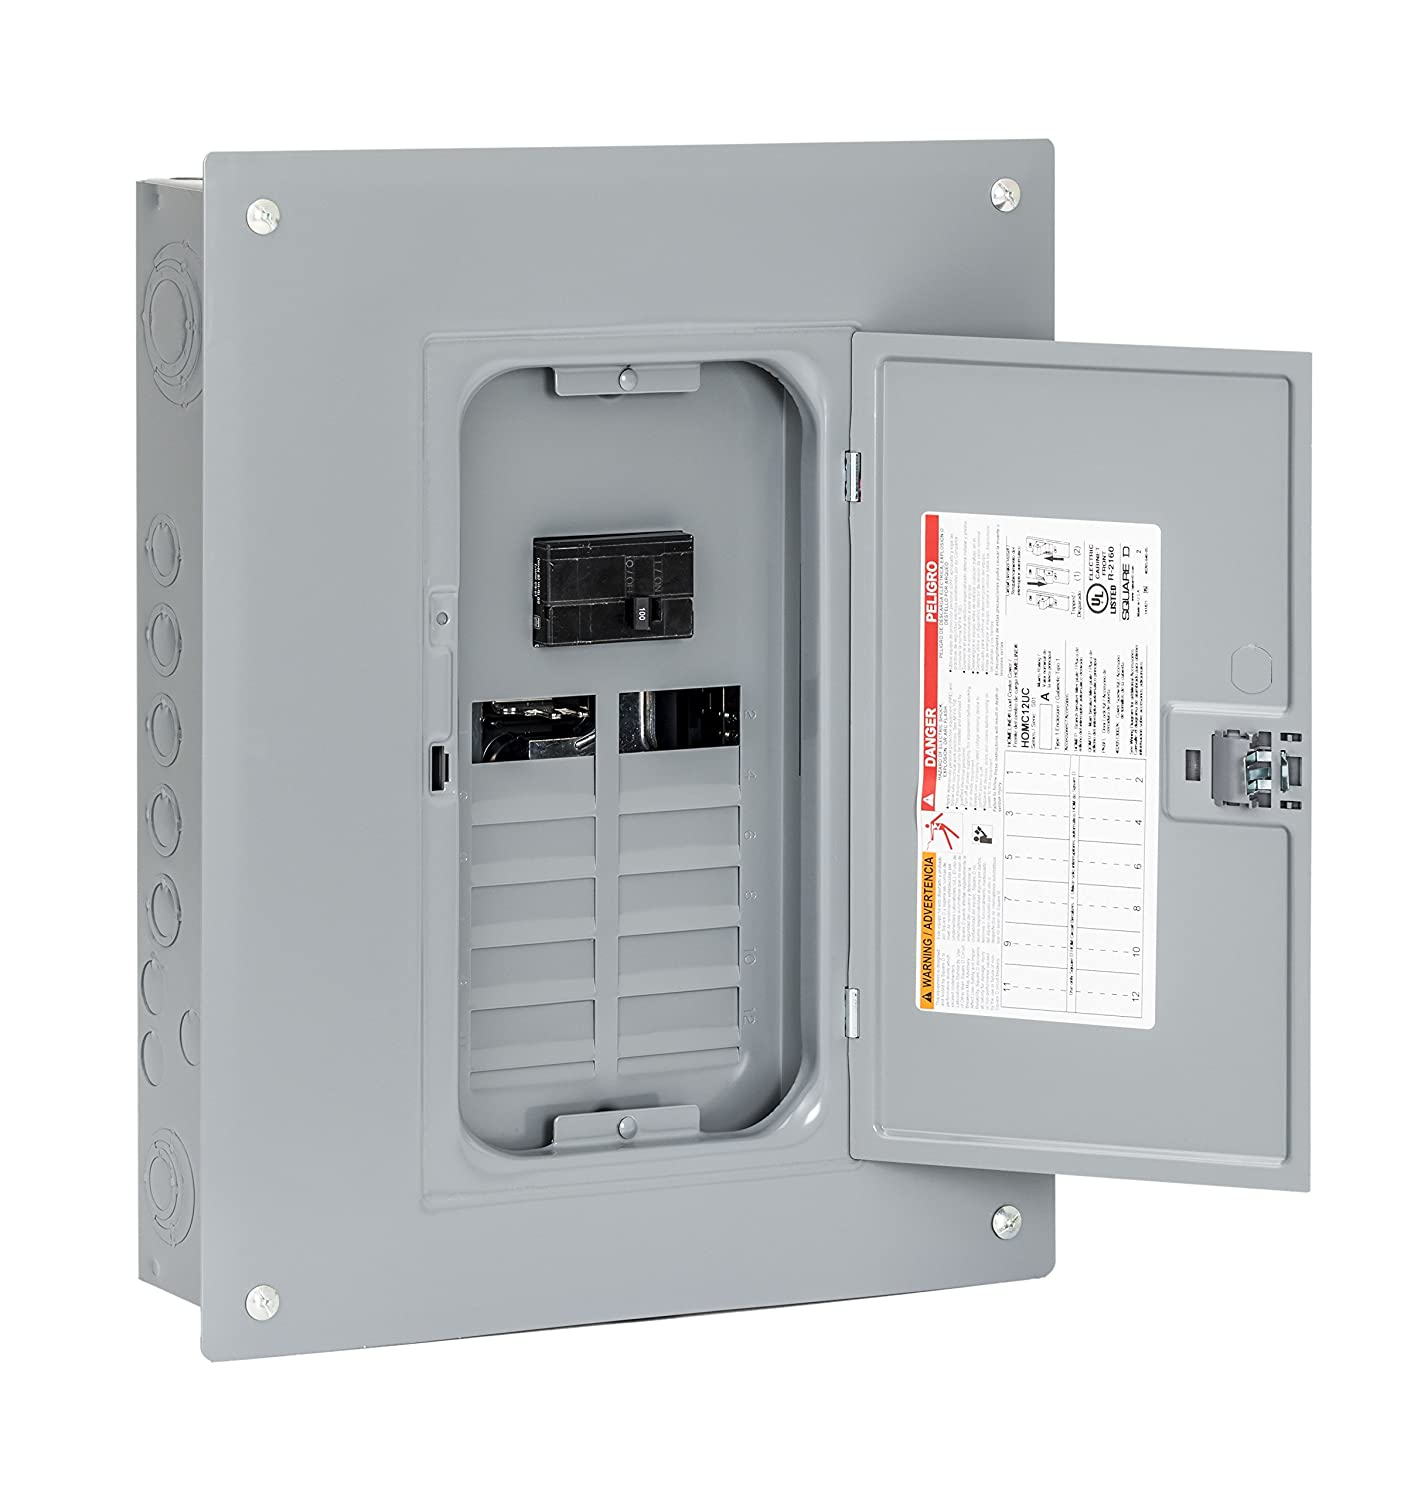 Square D By Schneider Electric Hom1224m100pc 100 Amp 12 Space 24 Two Pole 30 Circuit Breaker Hom230cp Indoor Main Load Center